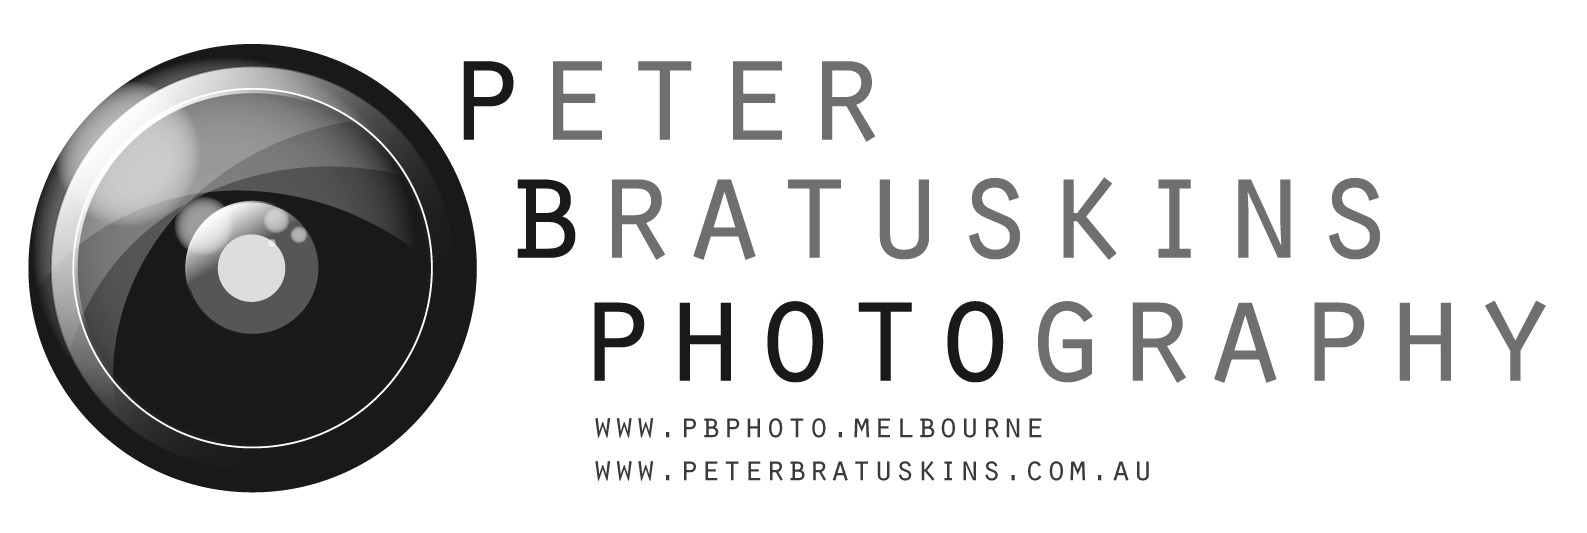 Peter Bratuskins Photography